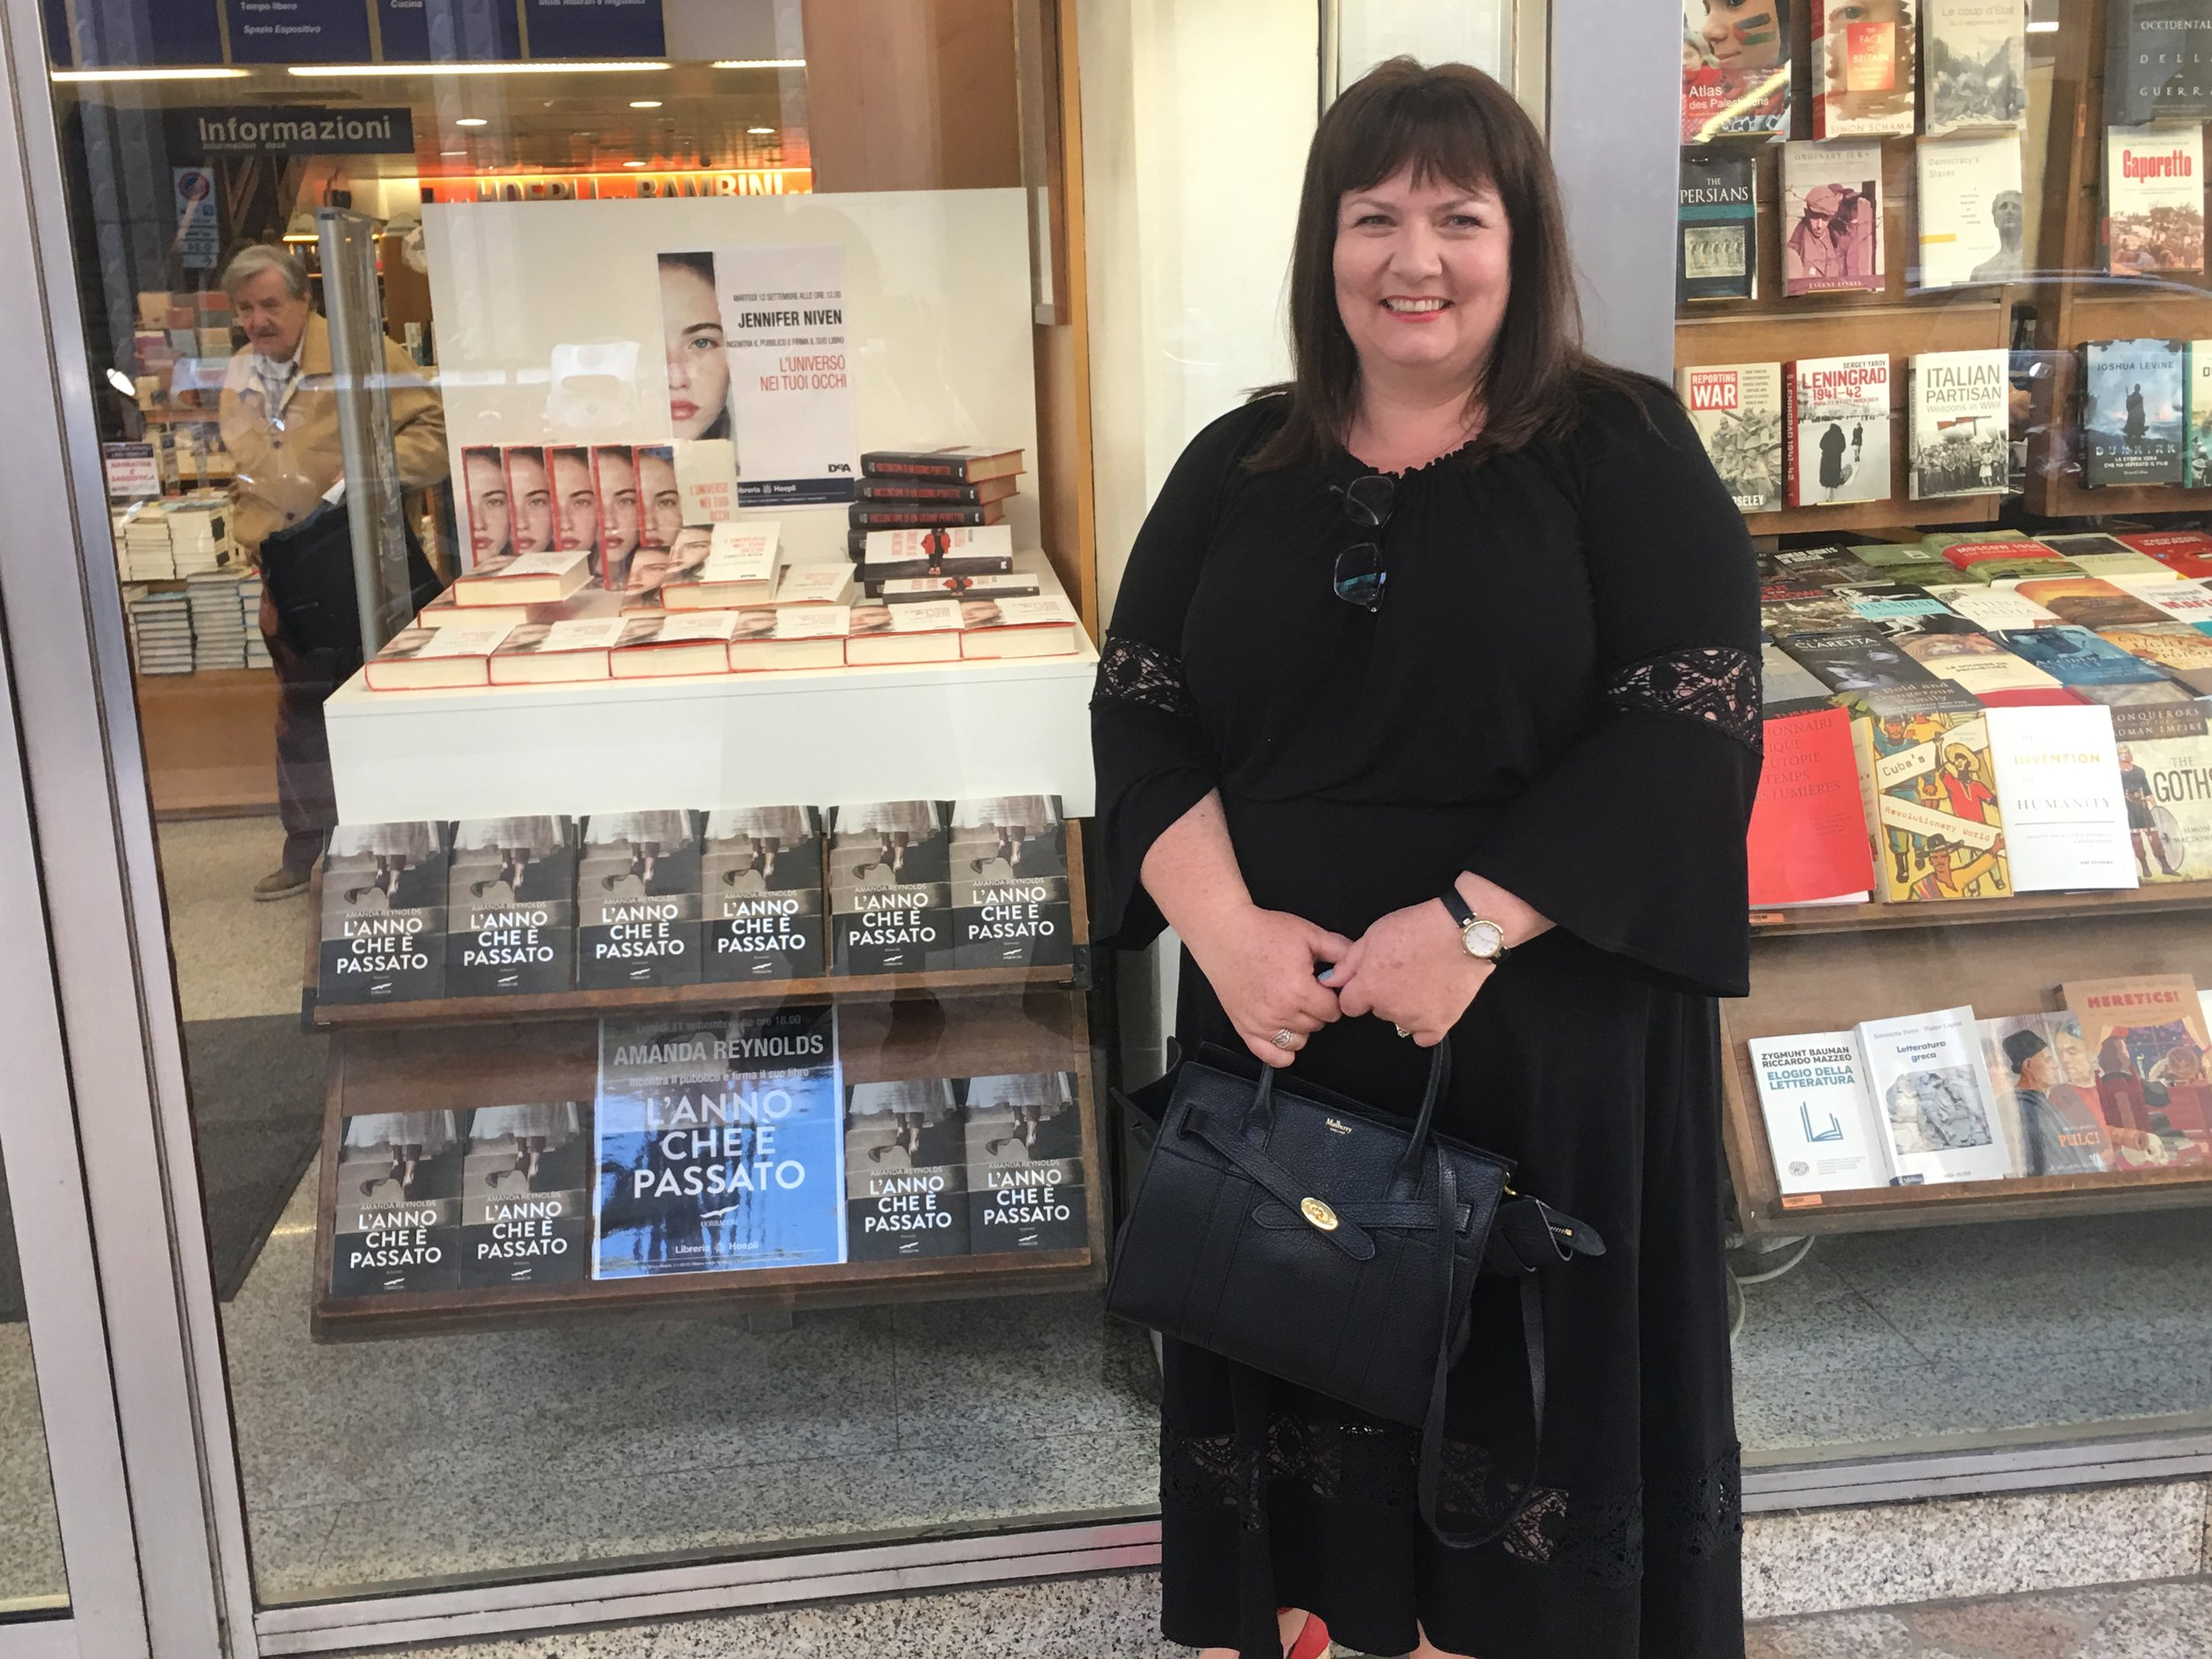 Here I am outside Hoepli in Milan, where Cecilia, my wonderful host at Corbaccio,surprised me with this amazing window display. I signed about forty books inside, and had a tour of the five floors - what a beautiful bookstore.